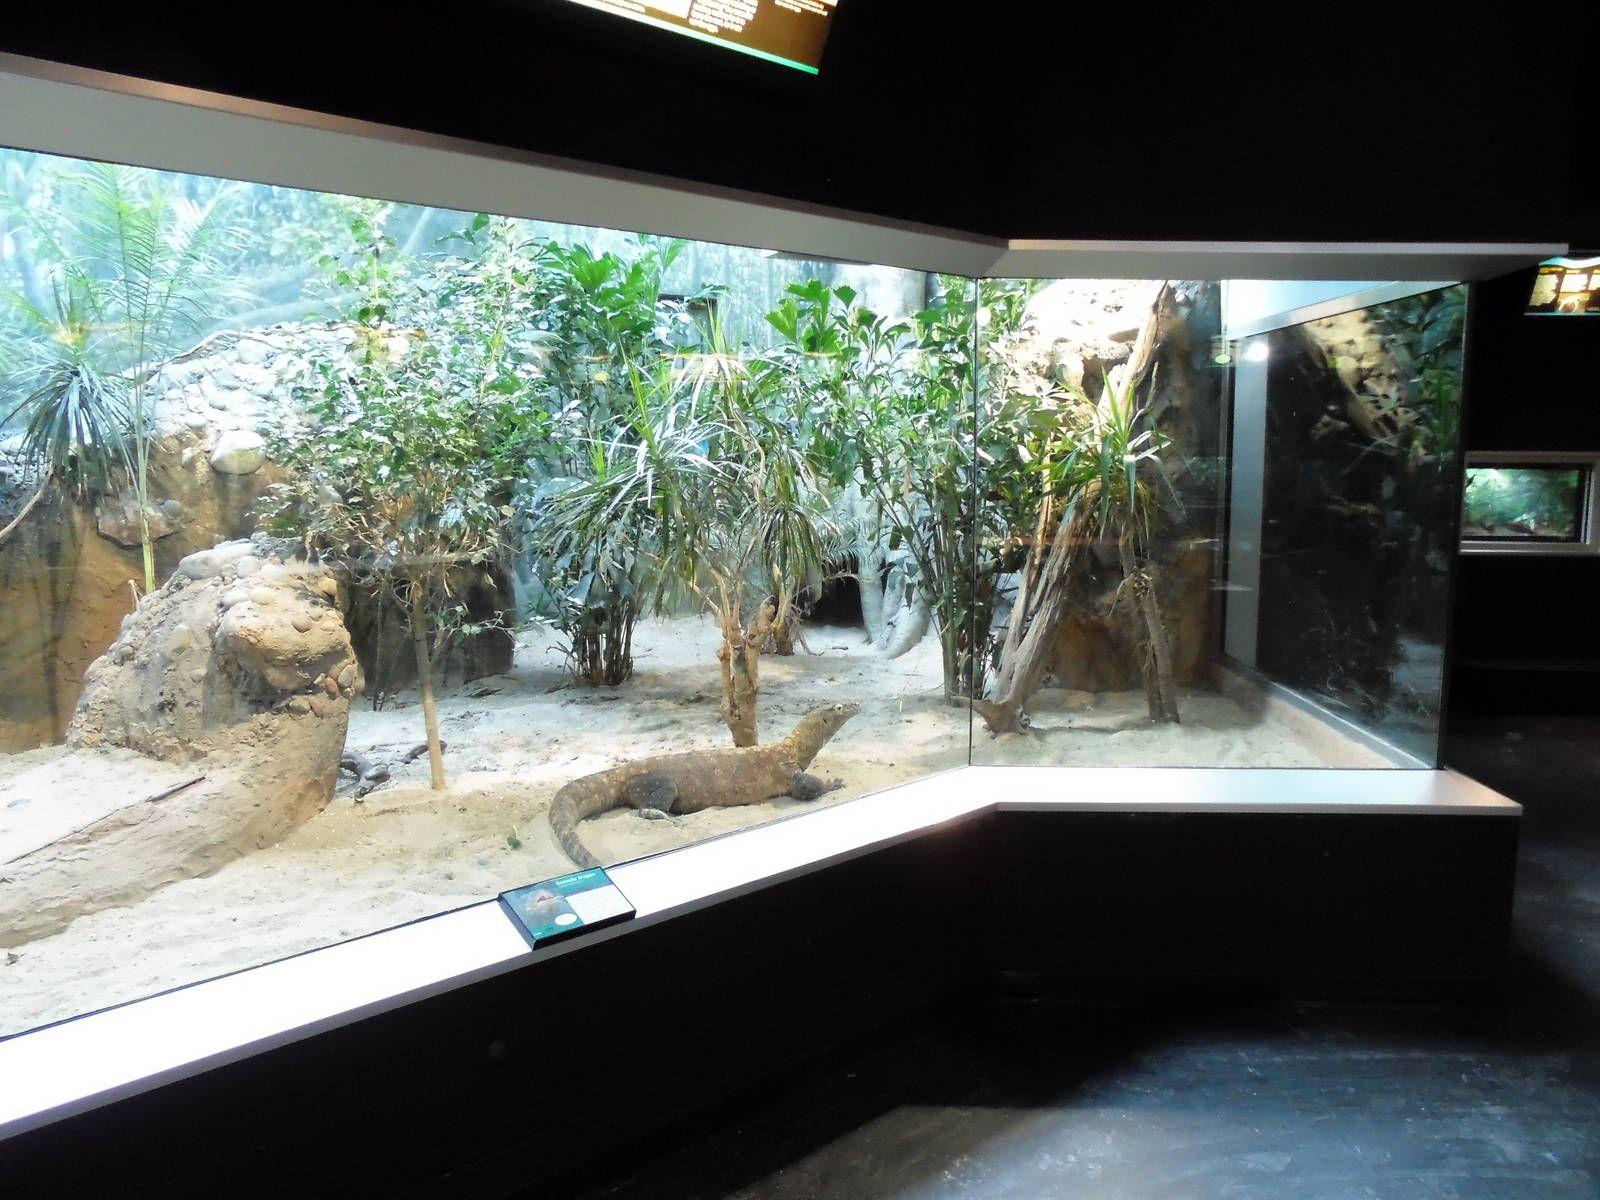 zoo reptile cages for sale - Google zoeken | Zoo | Pinterest ...